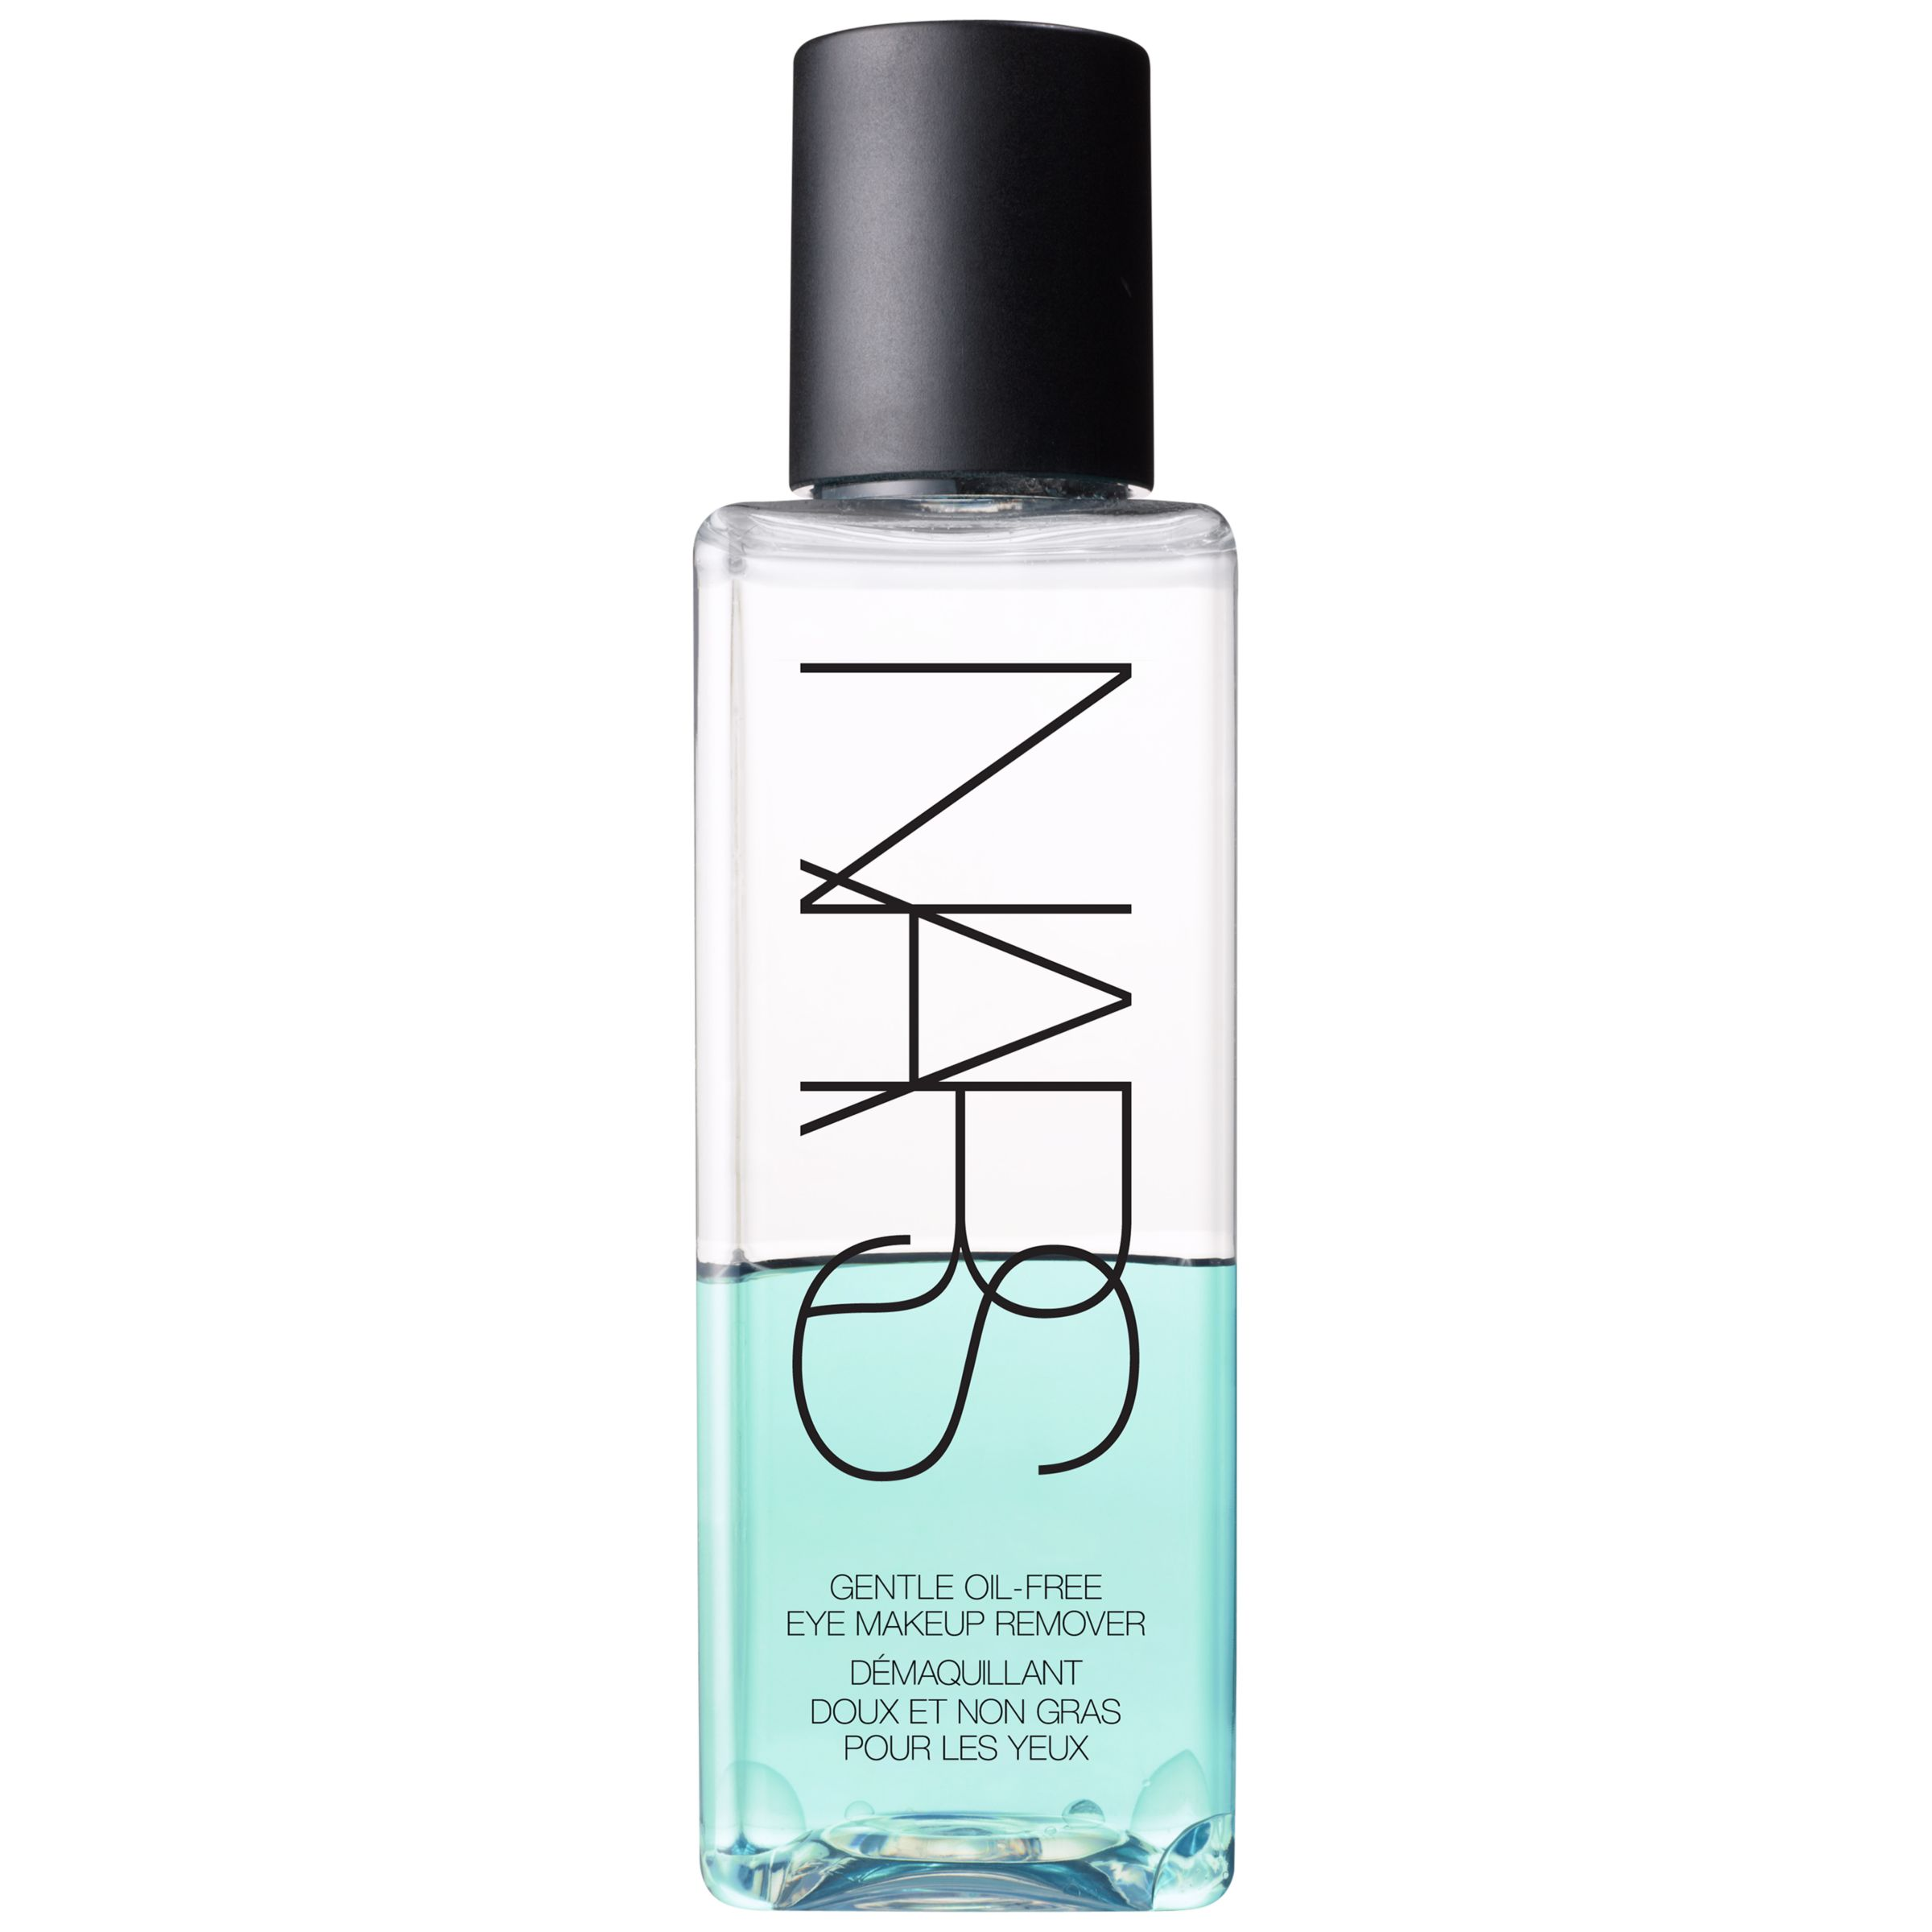 NARS NARS Gentle Oil-Free Eye Makeup Remover, 100ml